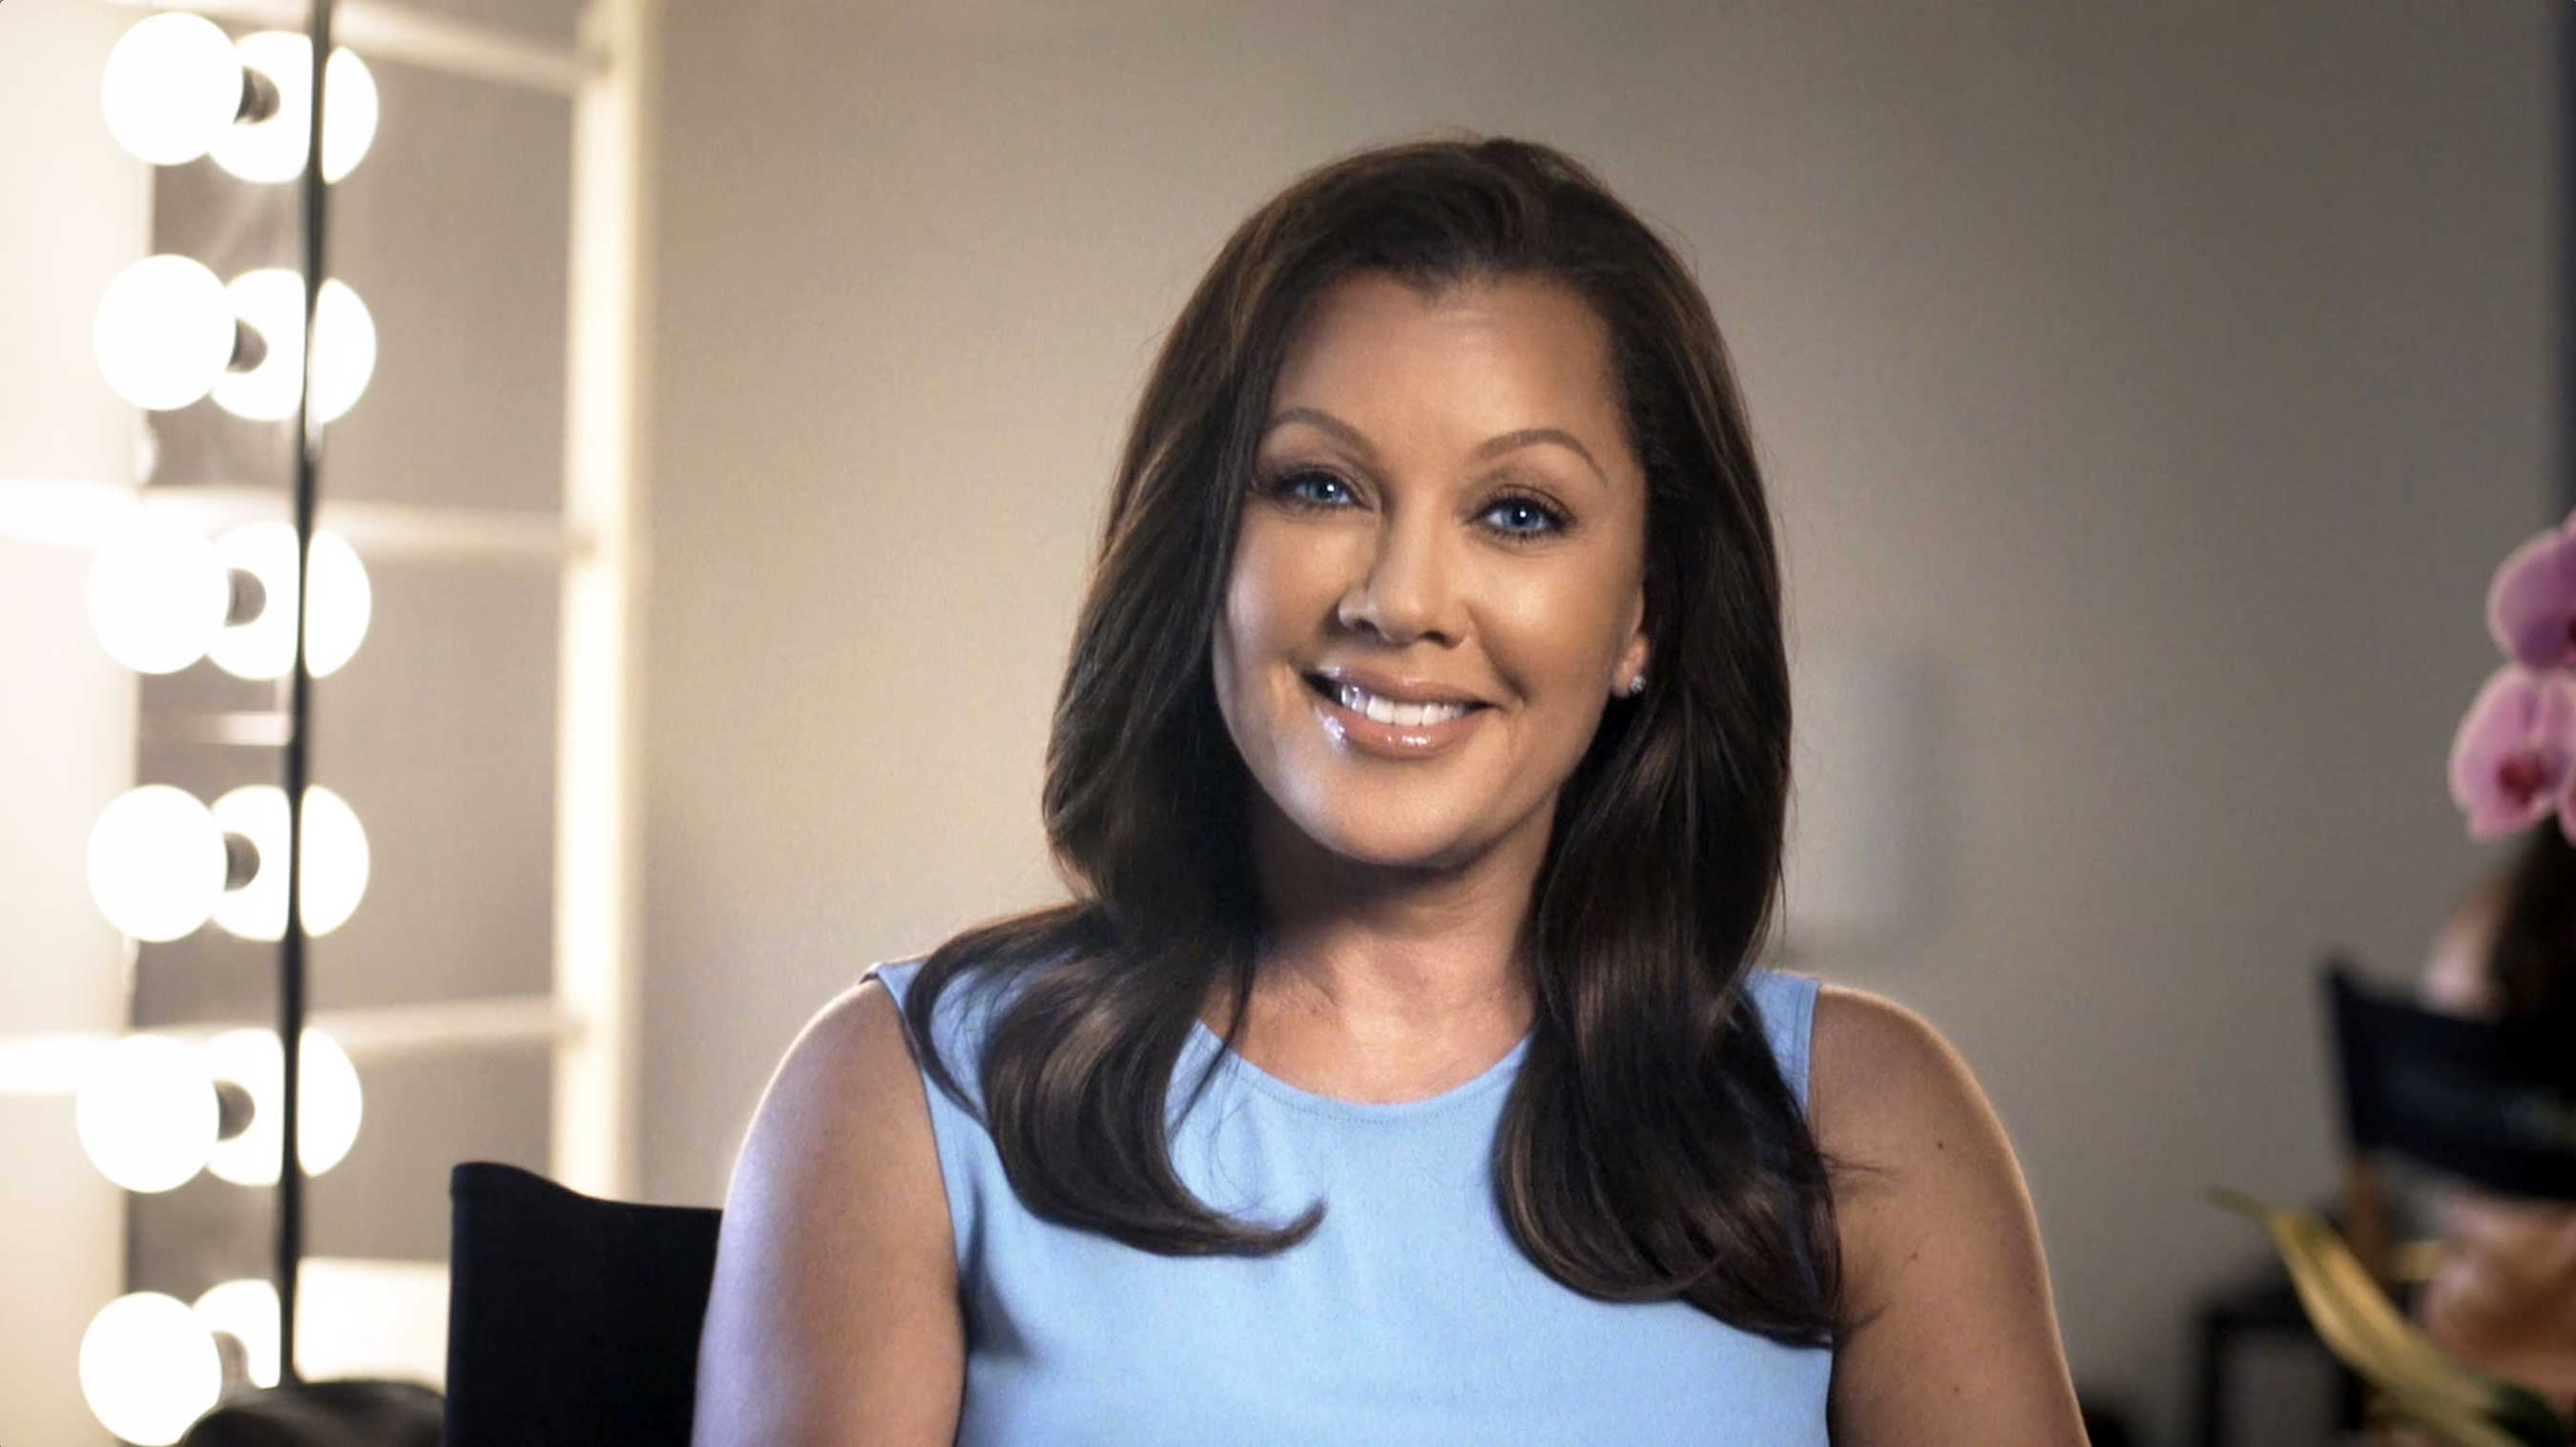 Longtime Clear Eyes spokesperson Vanessa Williams shares her own shining moment to launch Clear Eyes My Shining Moments Campaign, all about celebrating the emotional role that eyes (and taking care of our eyes!) play in our lives.